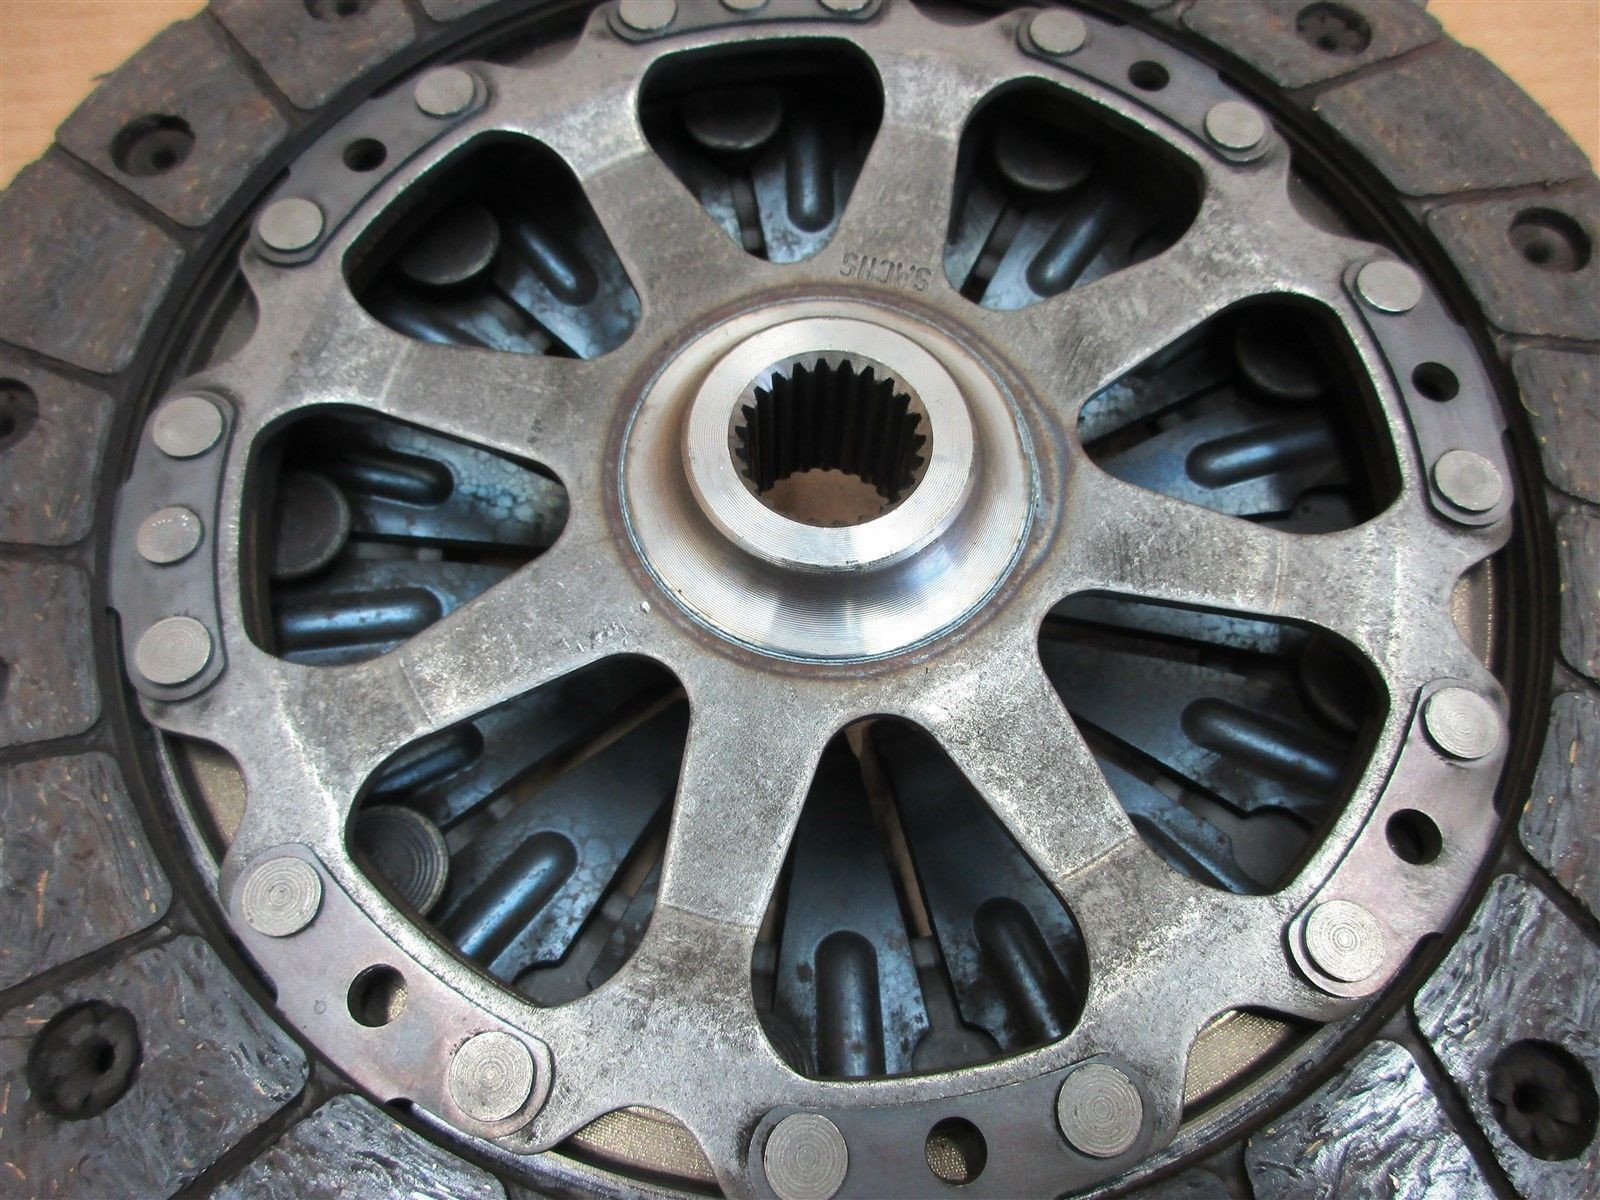 07 Cayman S RWD Porsche 987 CLUTCH DISC + FLYWHEEL 44,931